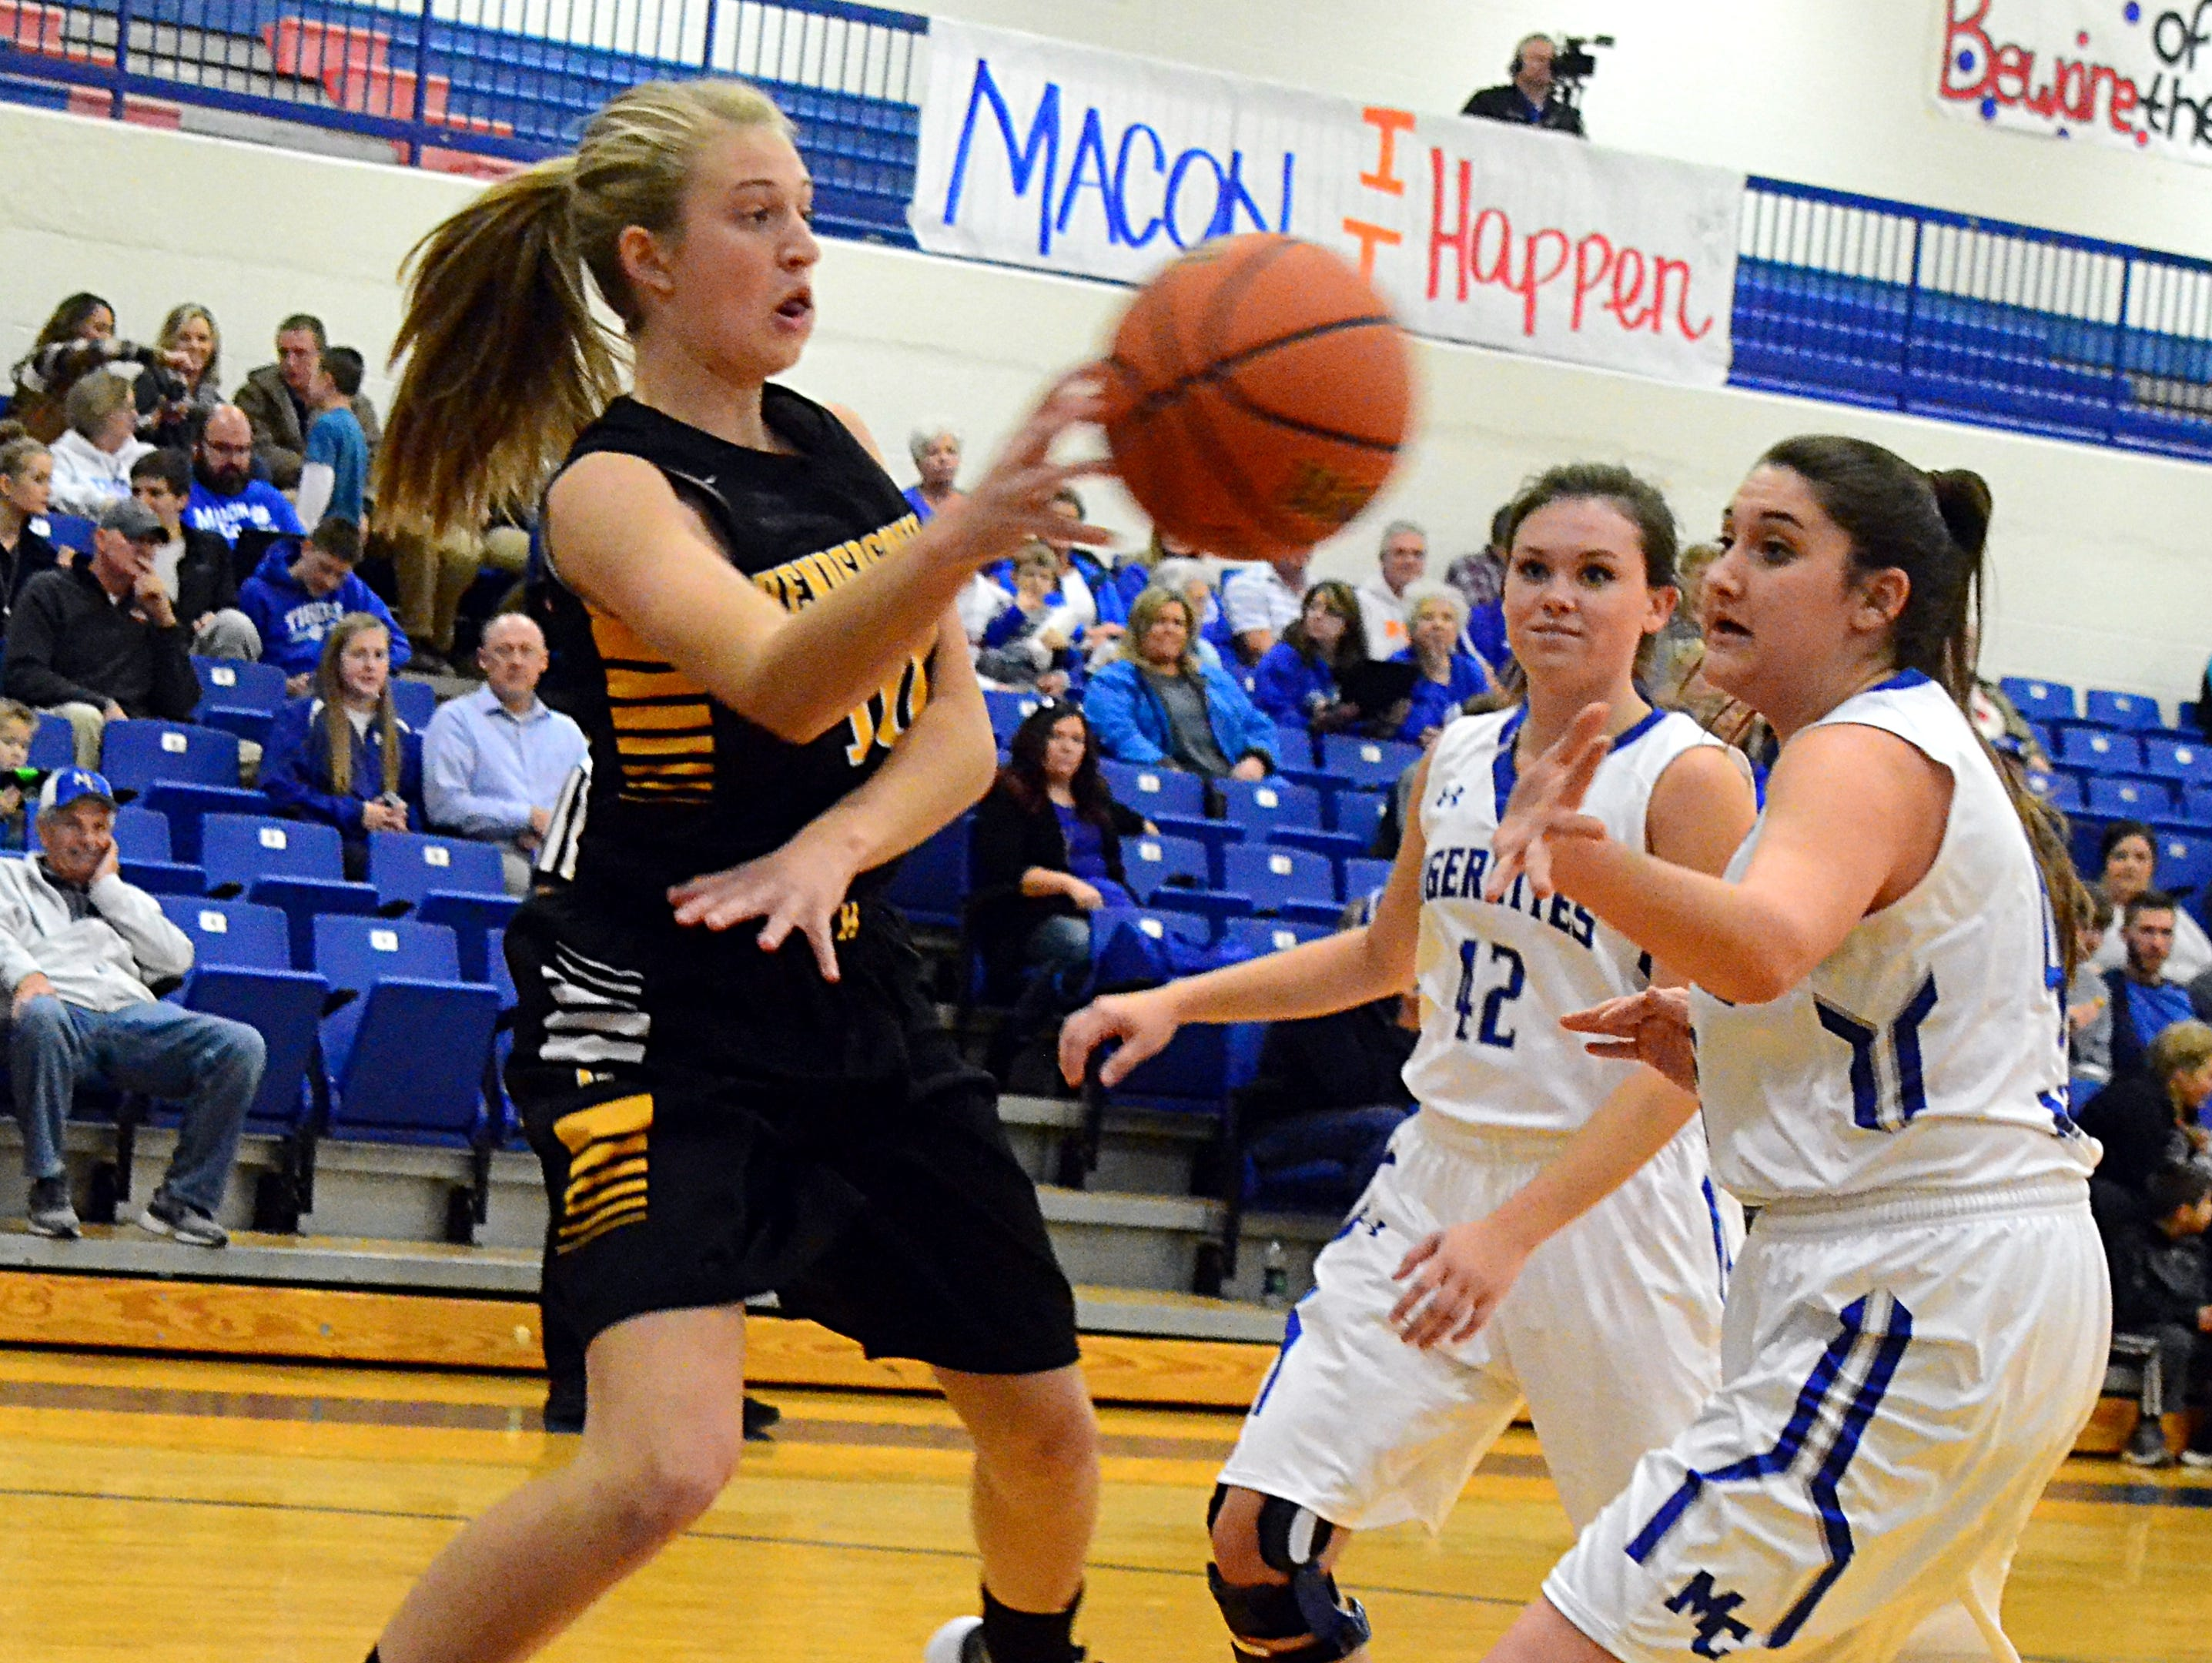 Hendersonville High sophomore Brooke Long saves a ball inbounds during first-quarter action. Long scored 10 points in the Lady Commandos' 48-42 victory at Macon County on Monday evening.